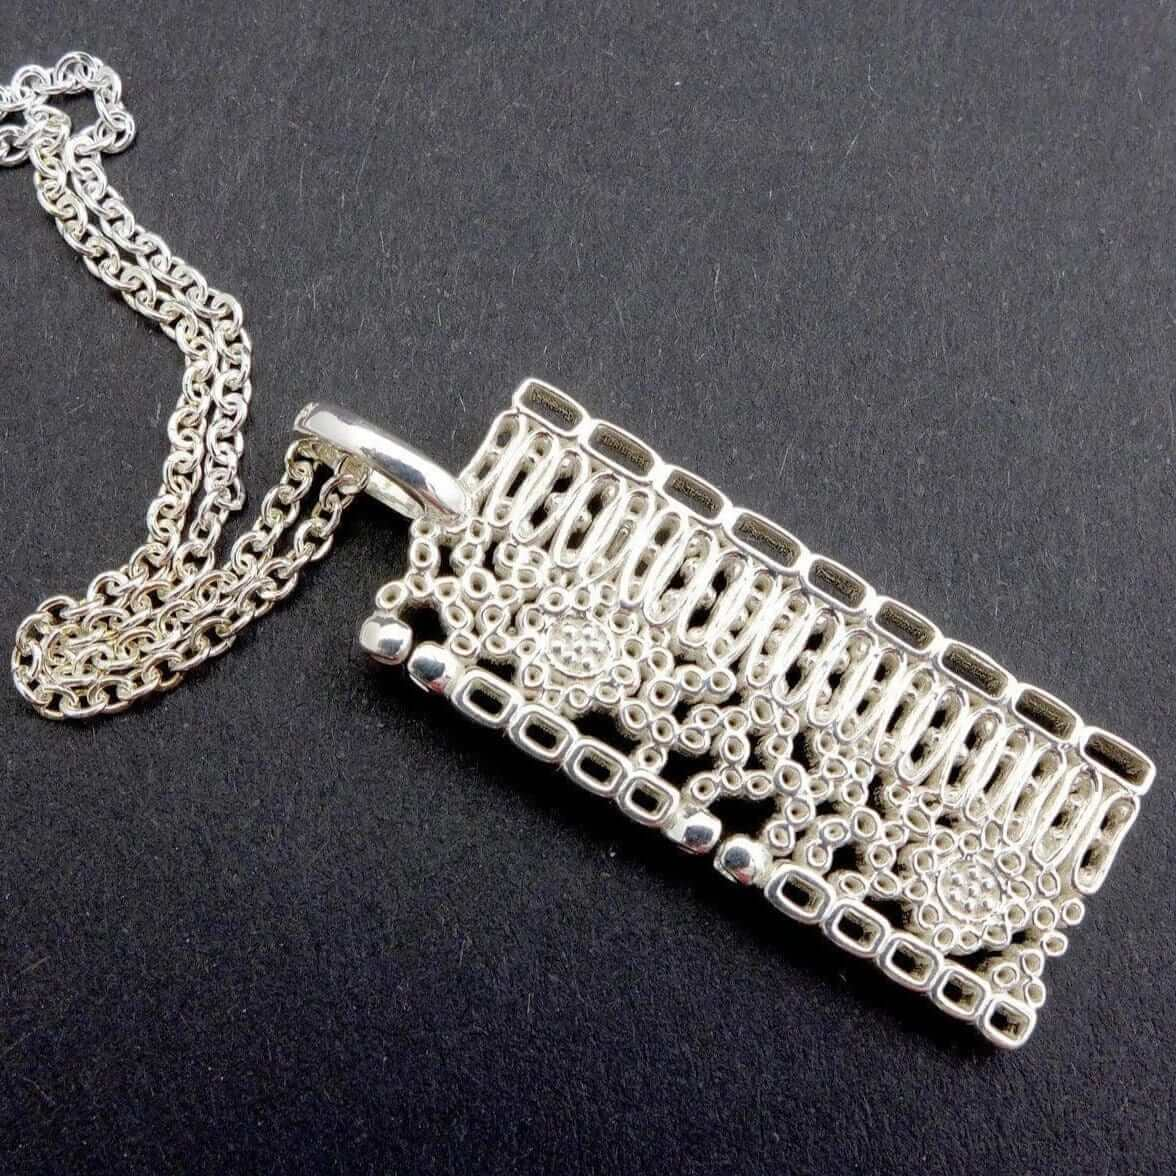 Dicot Leaf Anatomy Pendant in silver